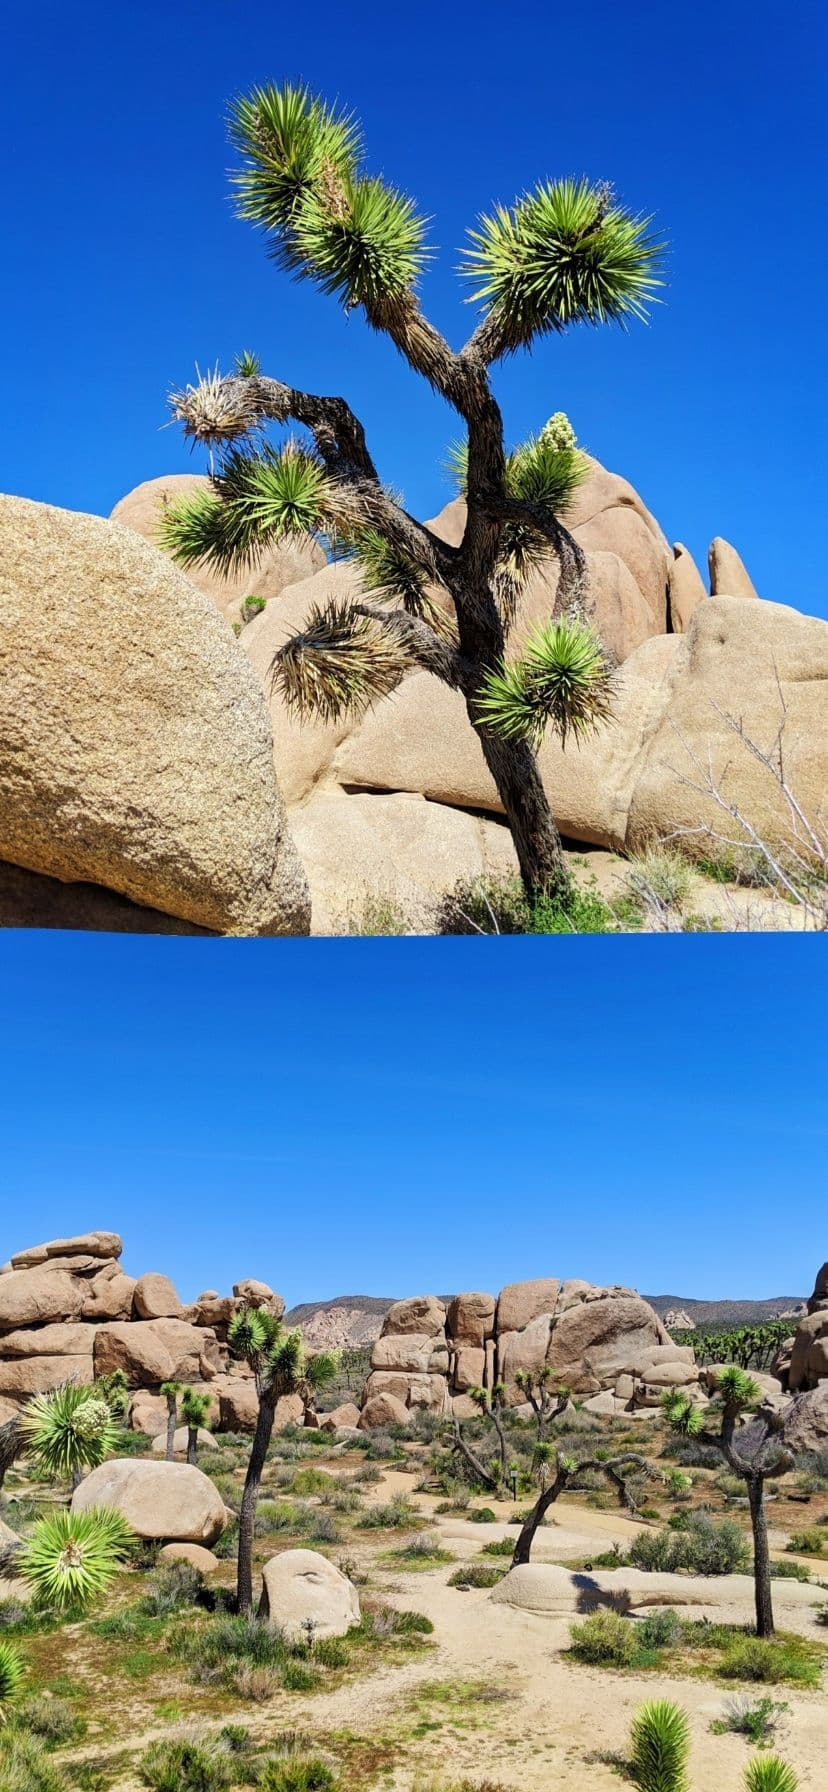 Rock Garden at Joshua Tree National Park